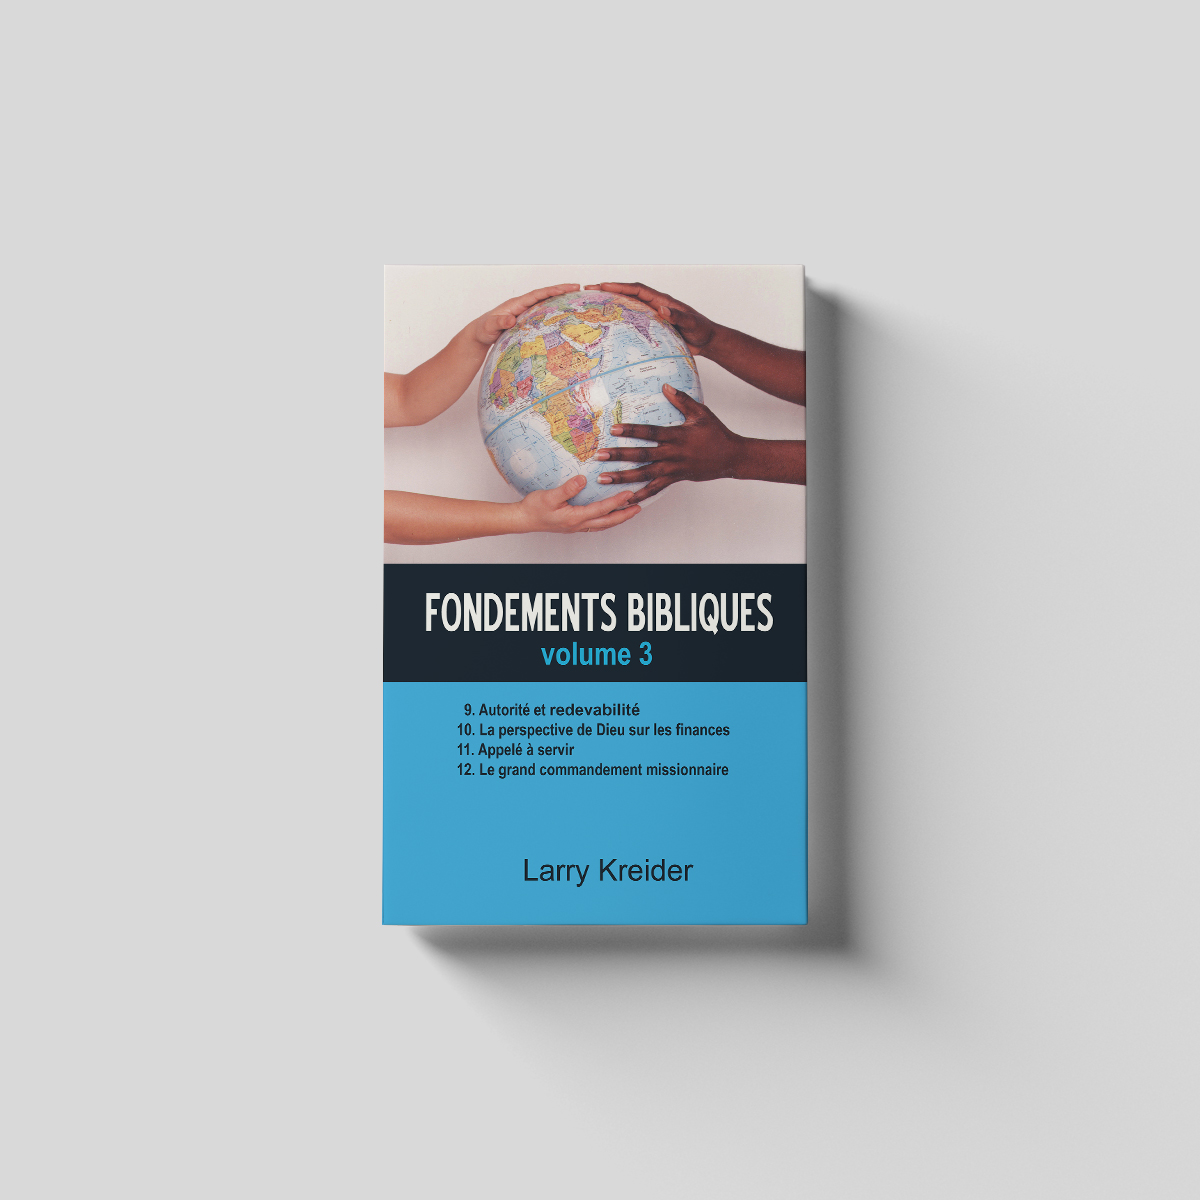 Fondements bibliques volume 3 - French